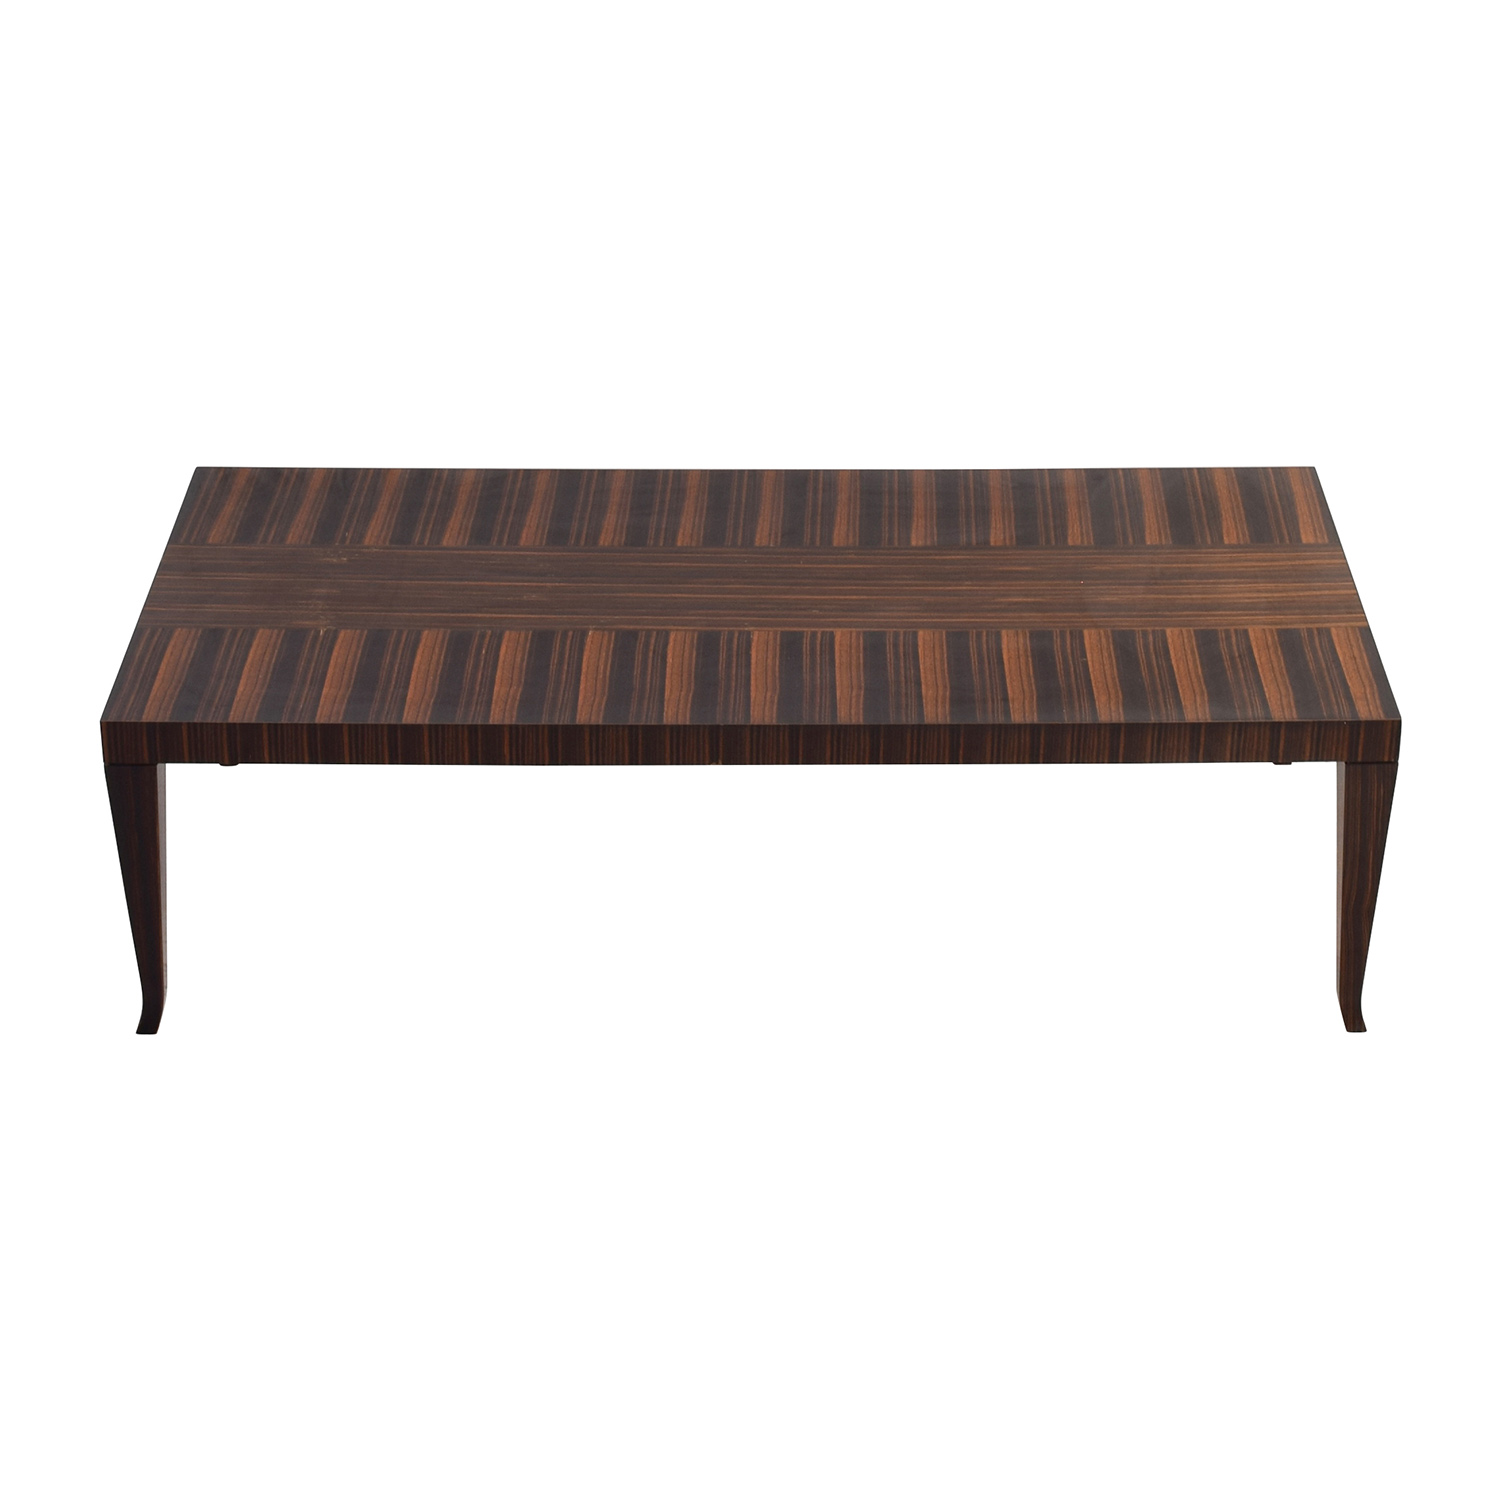 John Widicomb John Widicomb Solid Multi-Toned Wood Coffee Table dimensions